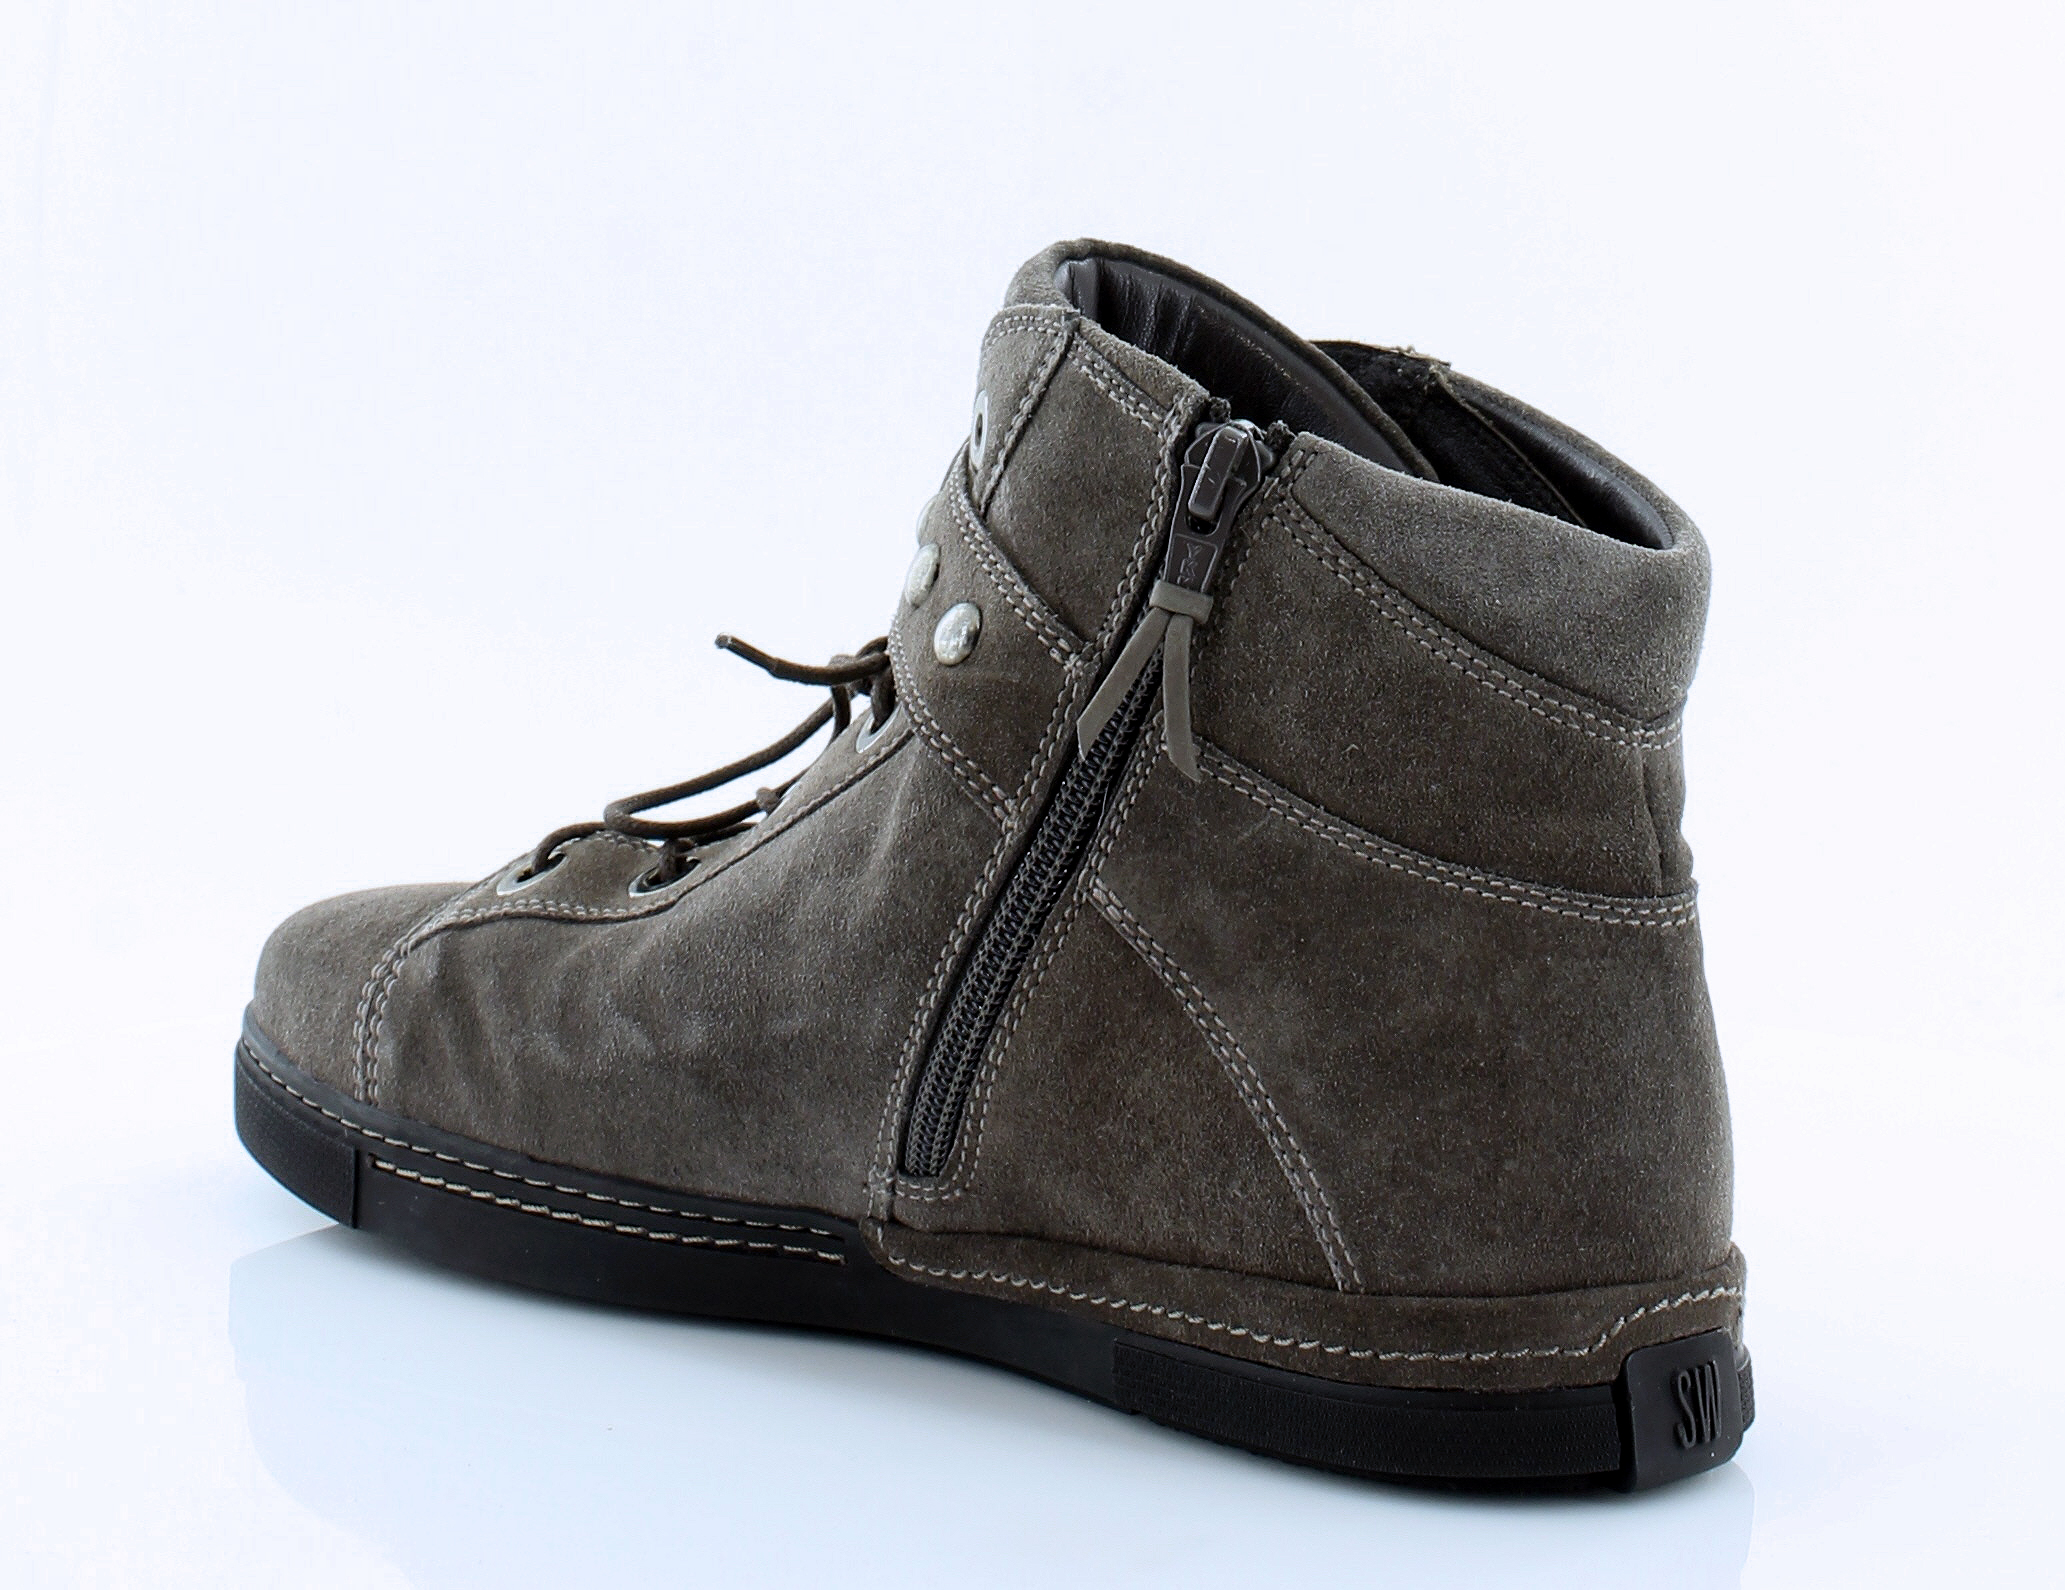 womens throwing shoes Reviews - Online Shopping Reviews on womens